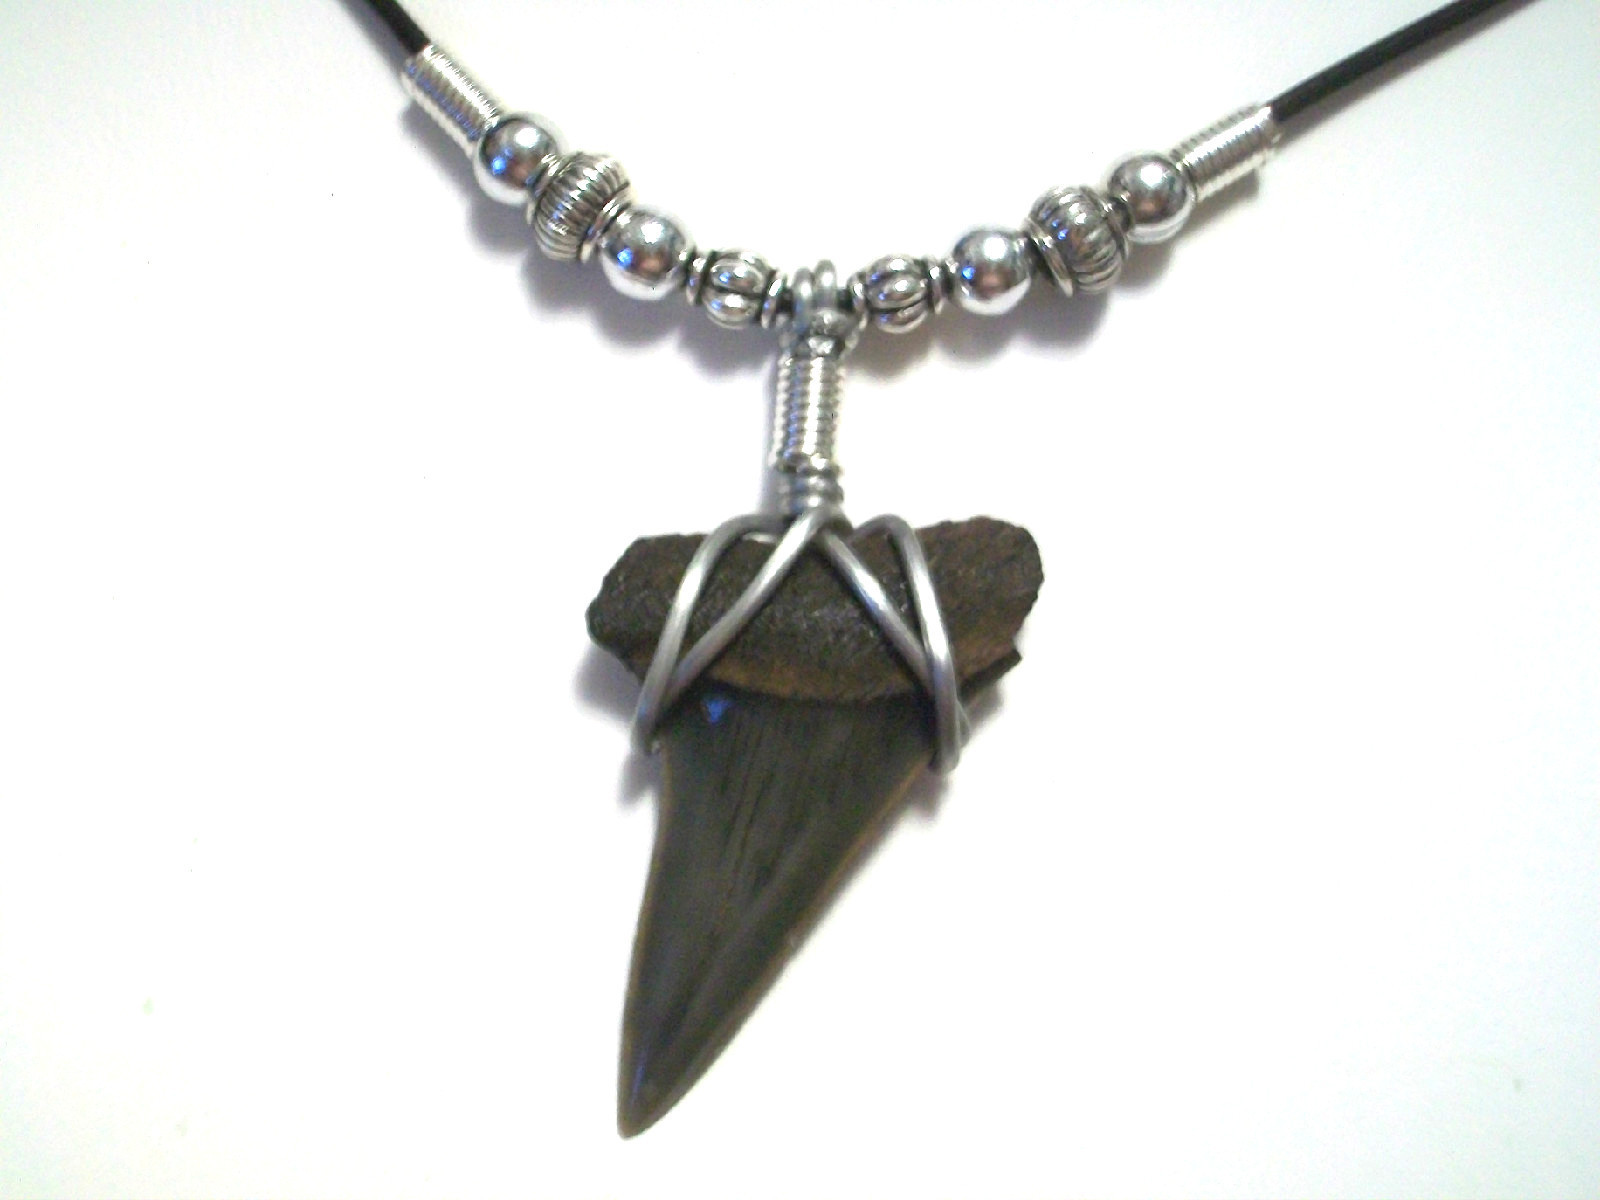 shark artifacts braided extinct mako fossils sterling silver shop dsc tooth pendant leather black and cord clasp with giant